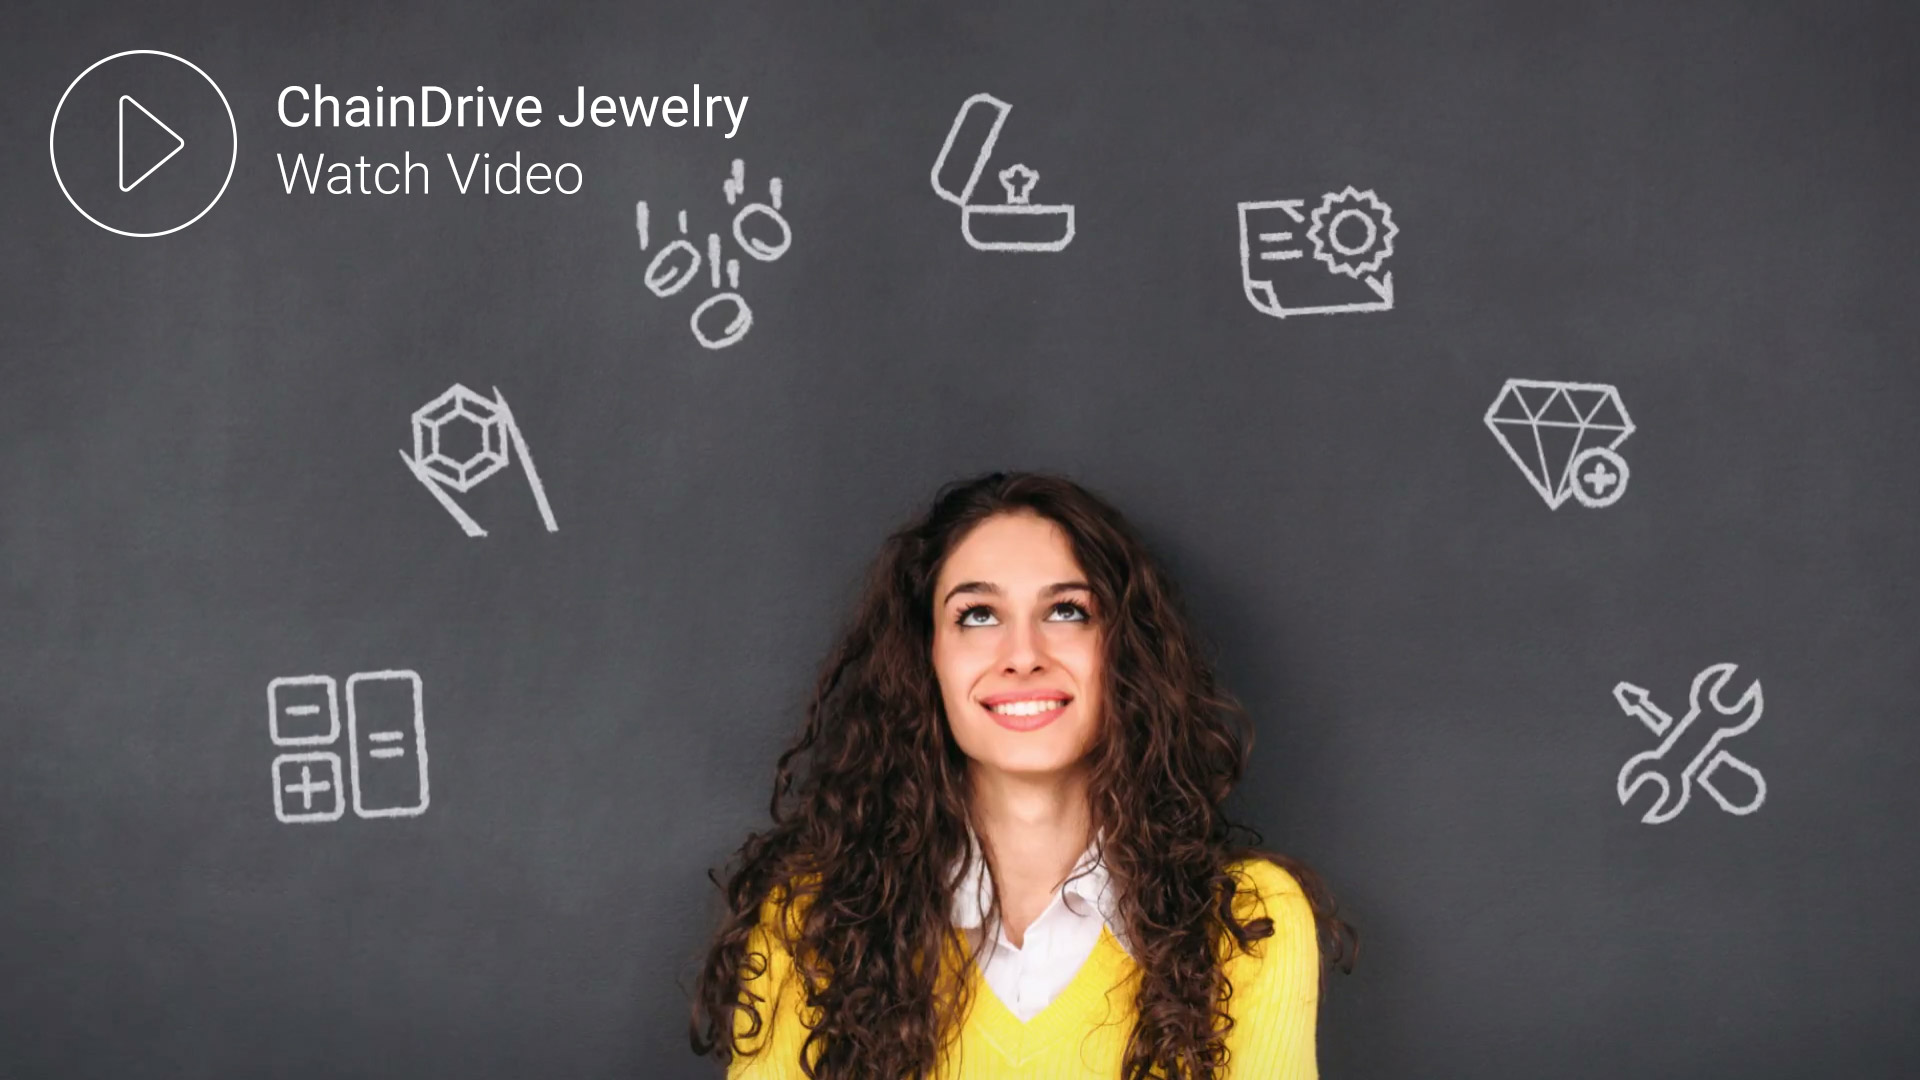 ChainDrive Jewelry Video